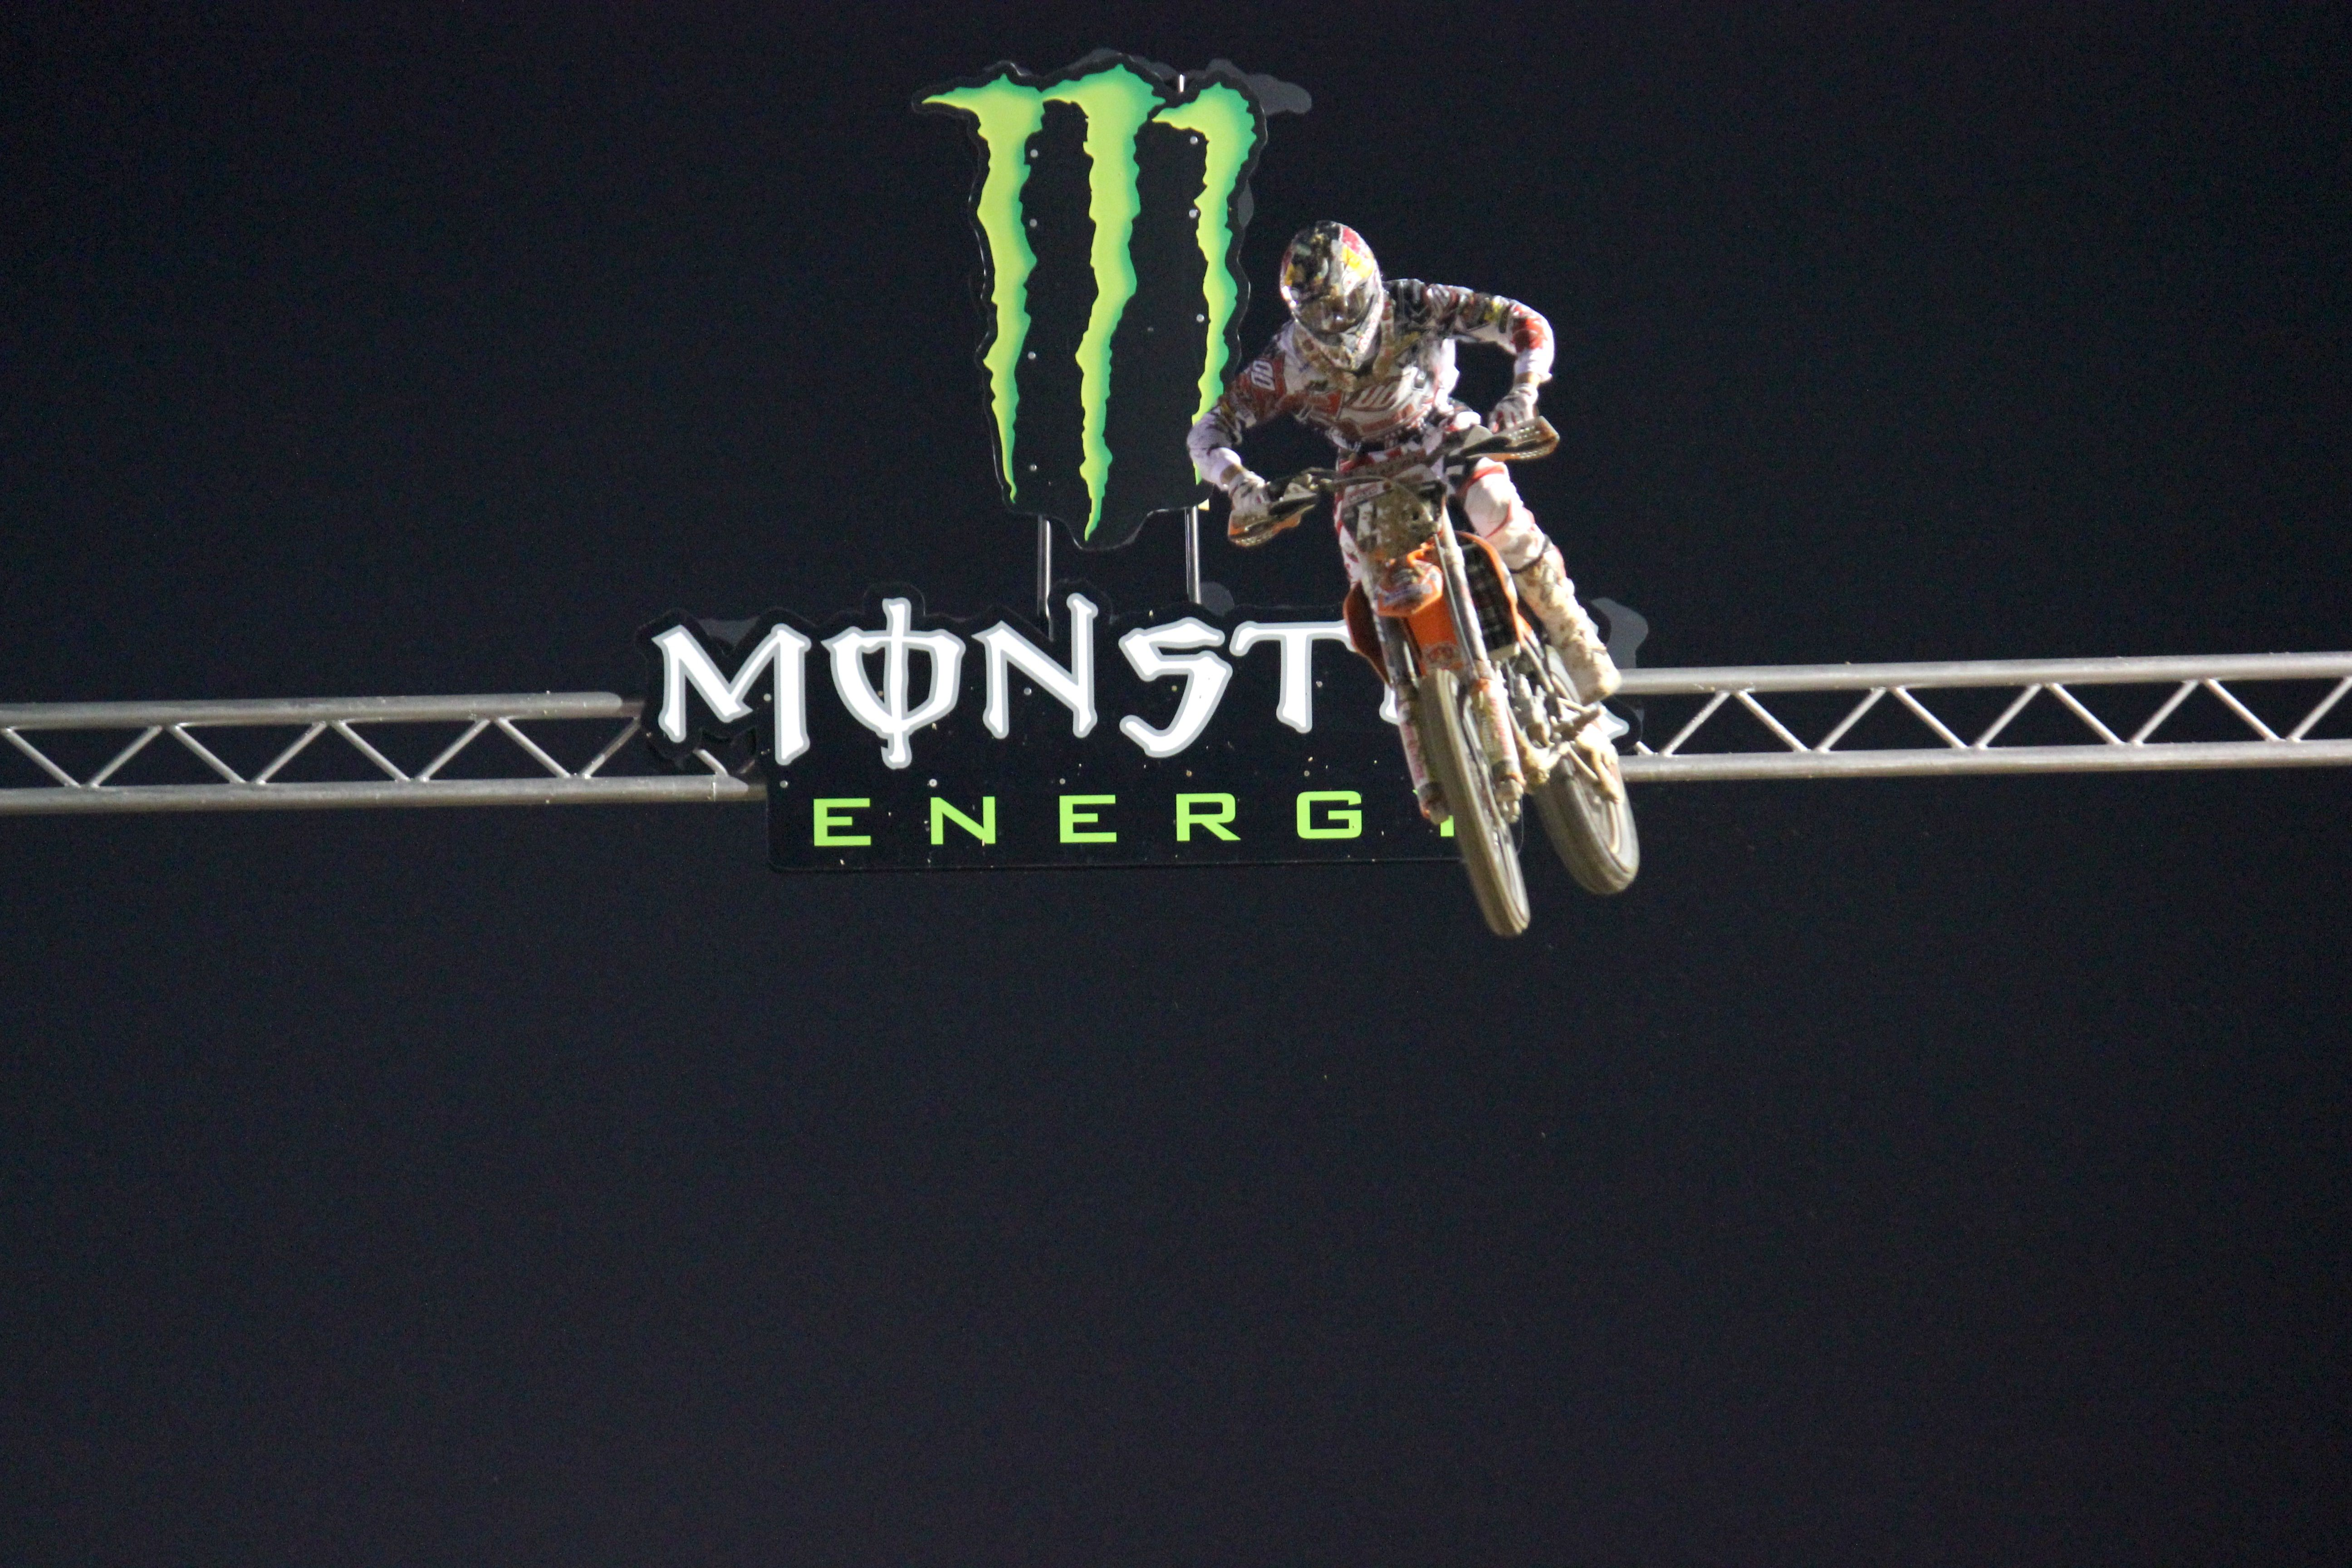 Pin on Motocross Wallpapers